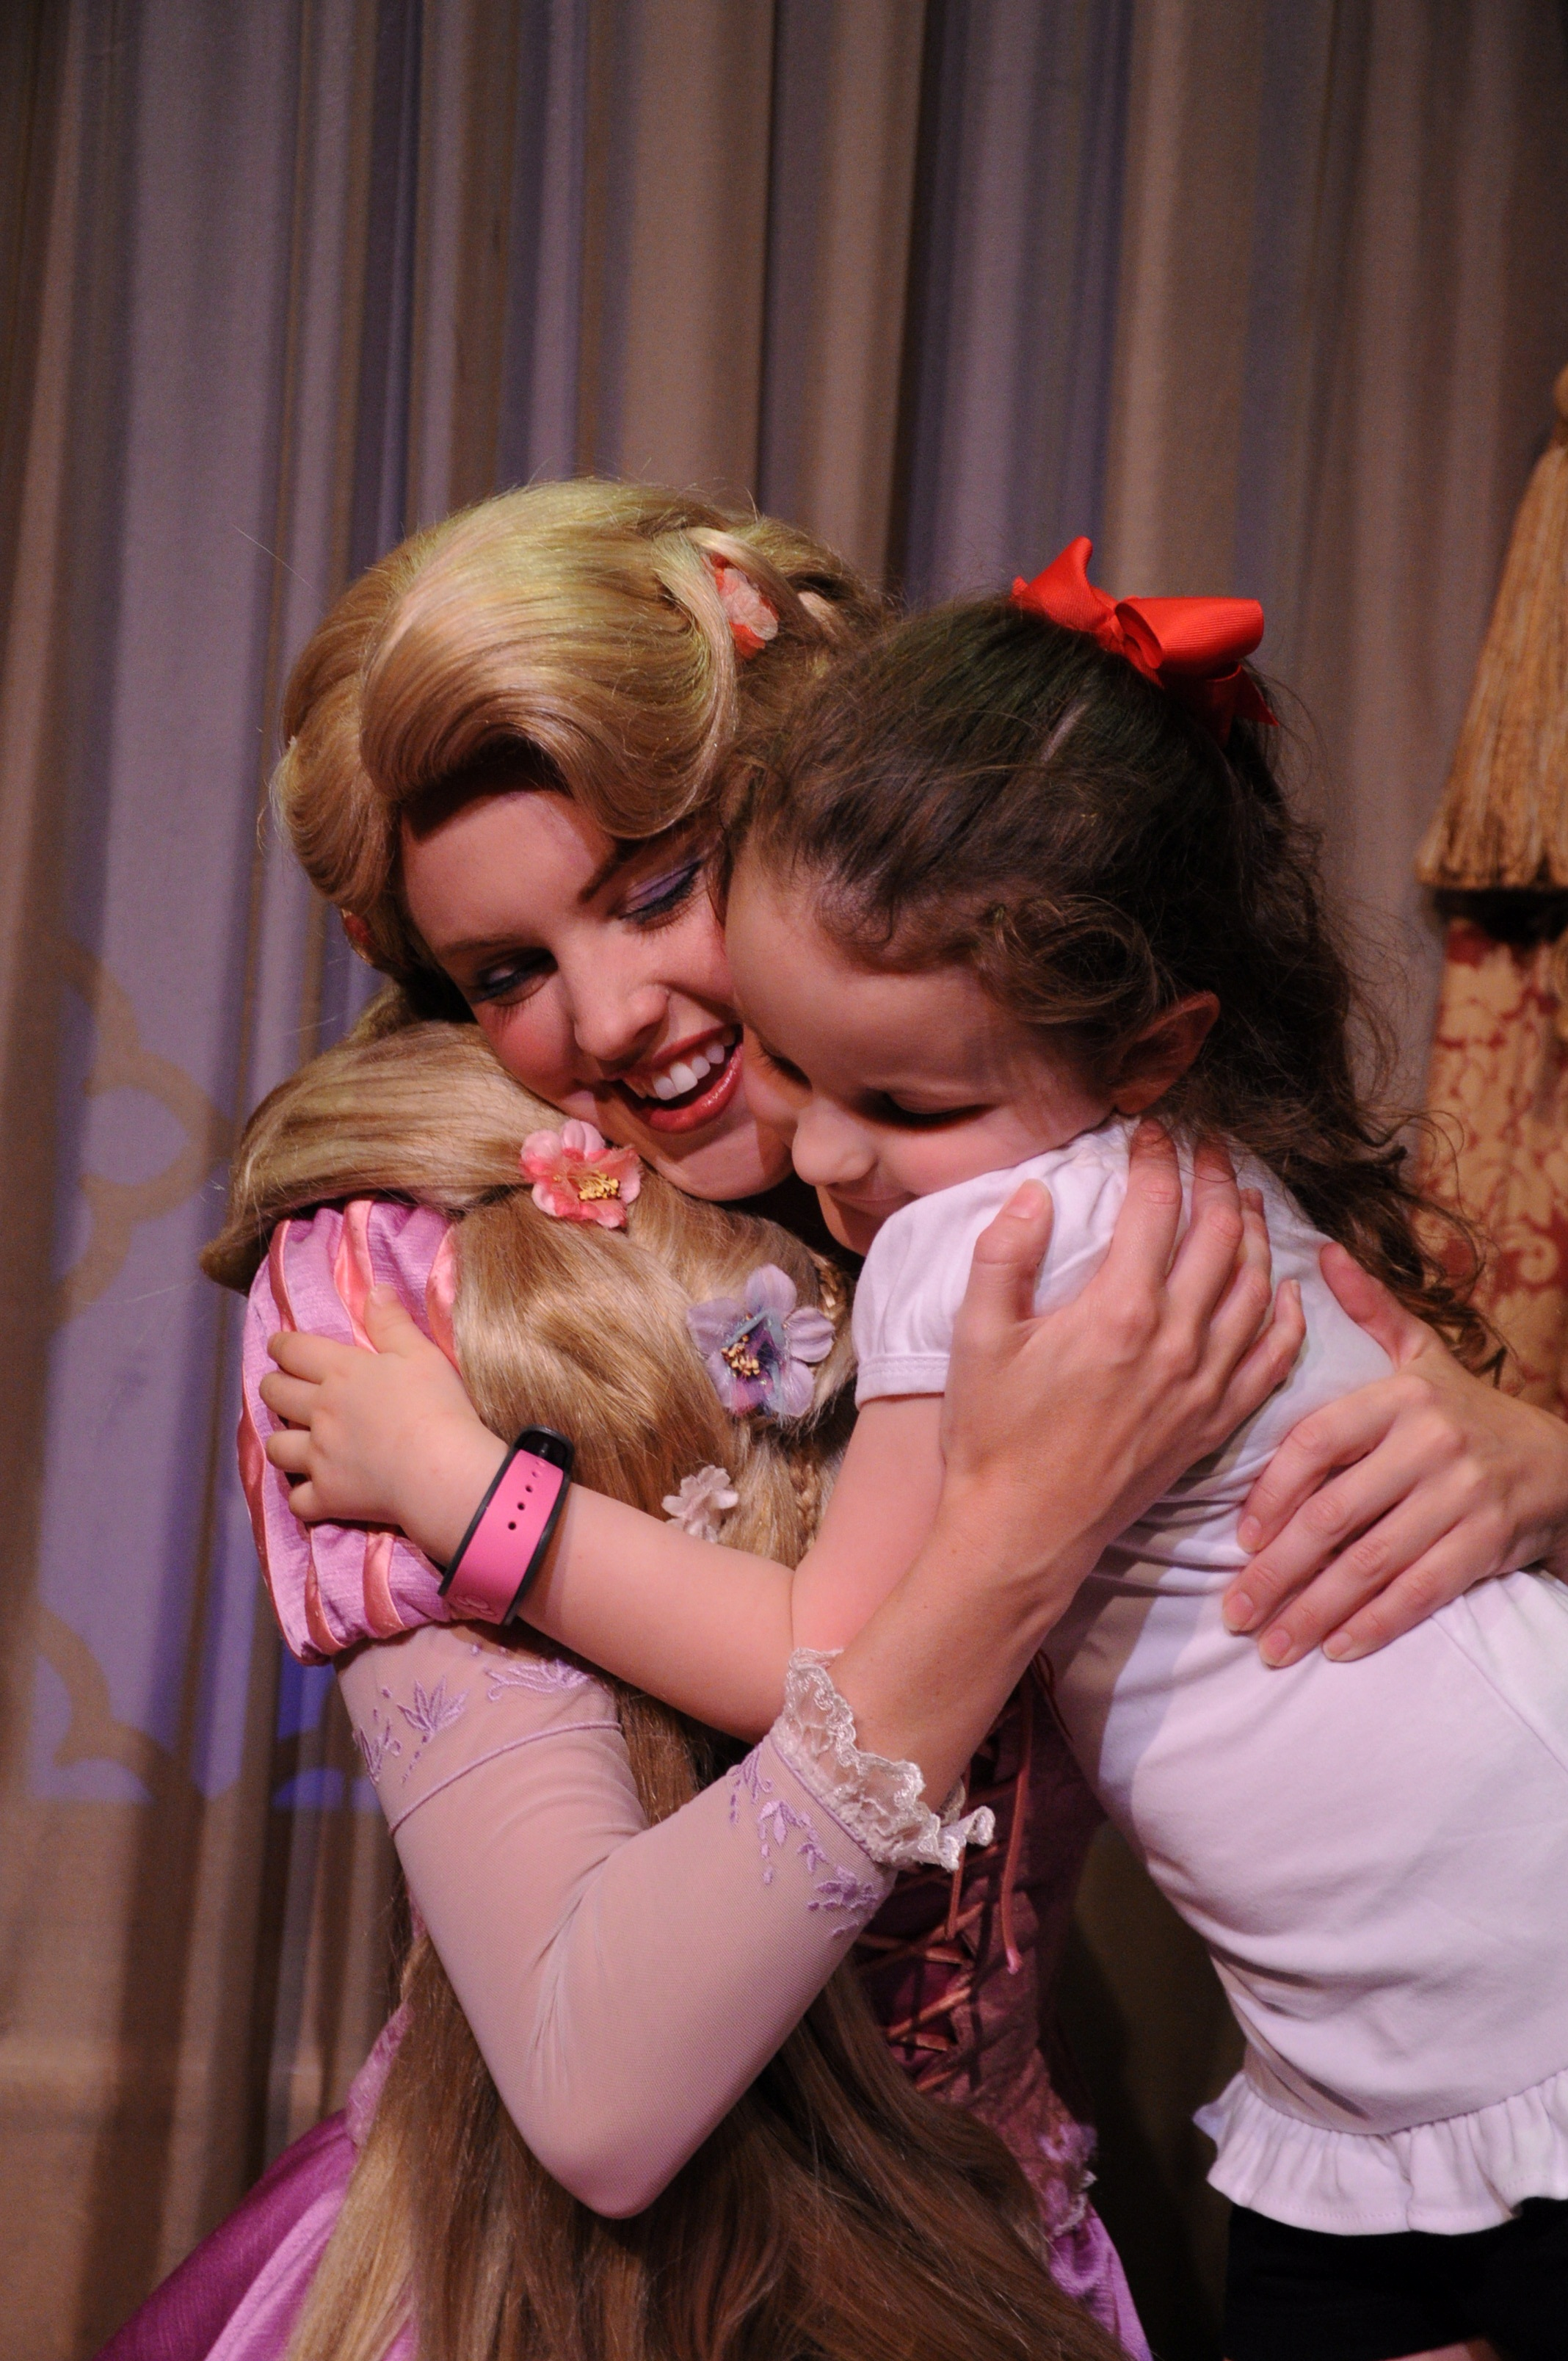 Rapunzel was so sweet as well.